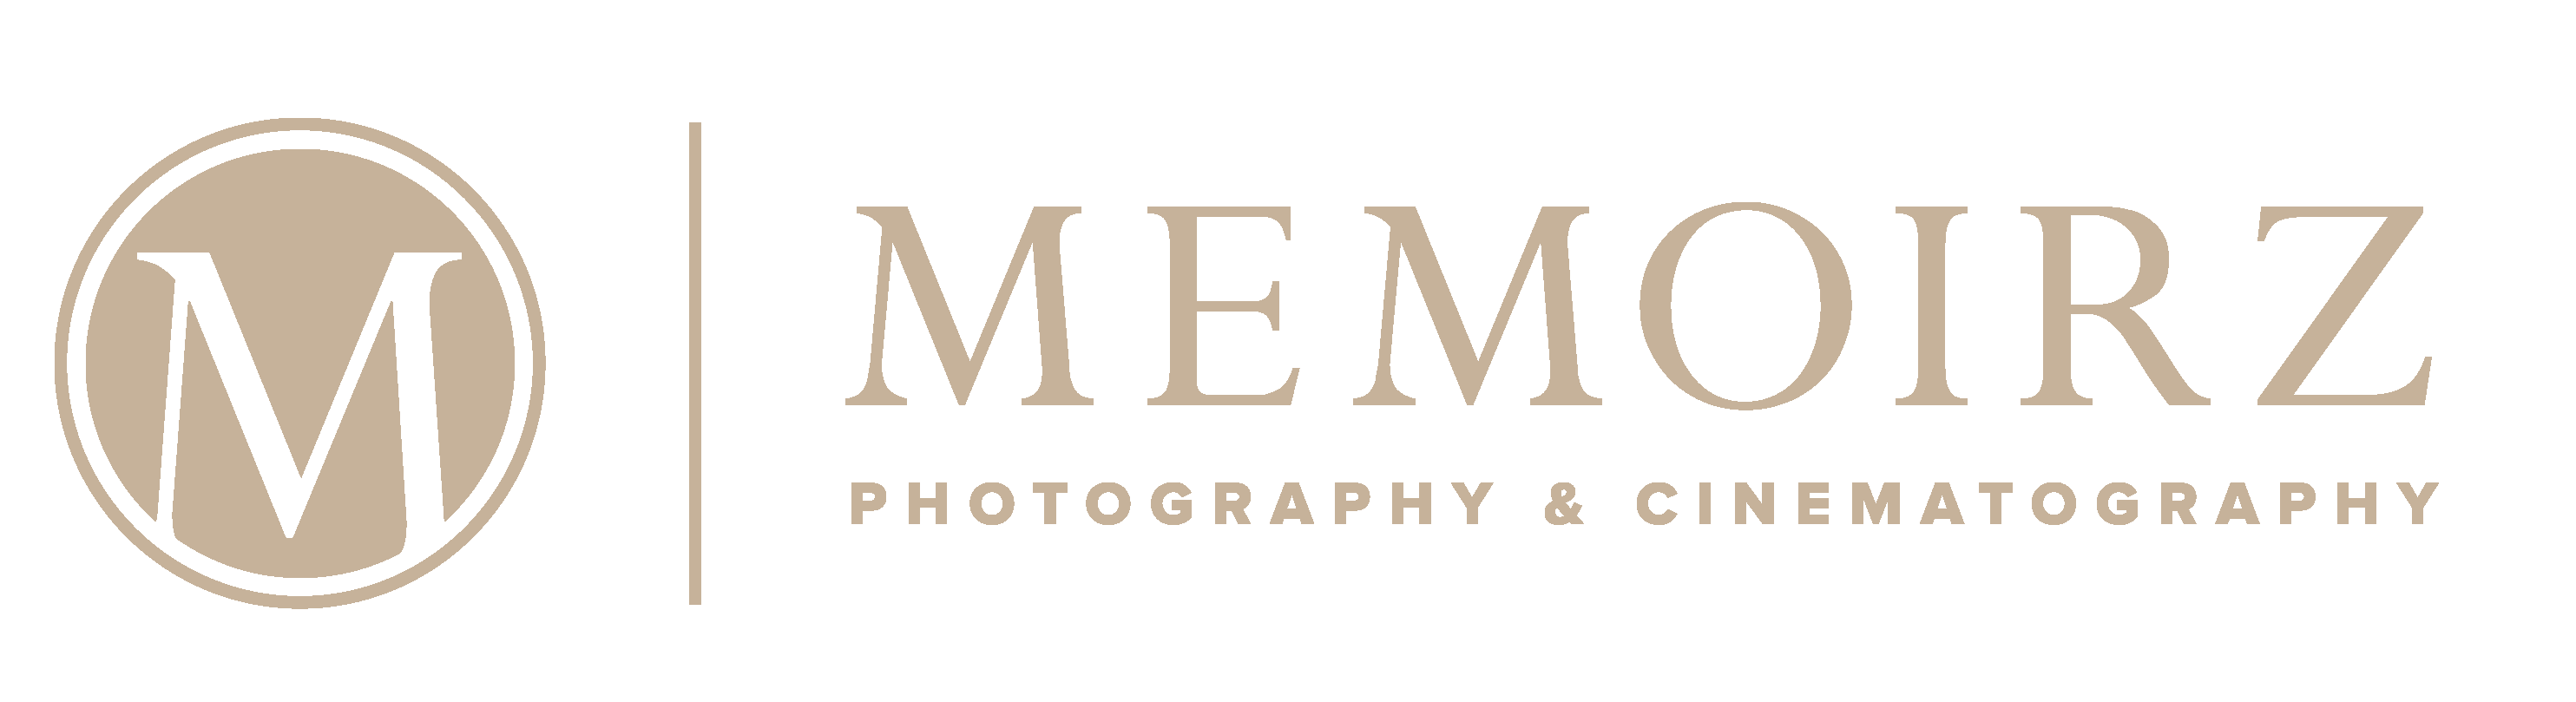 Asian Wedding Photography and Cinematography